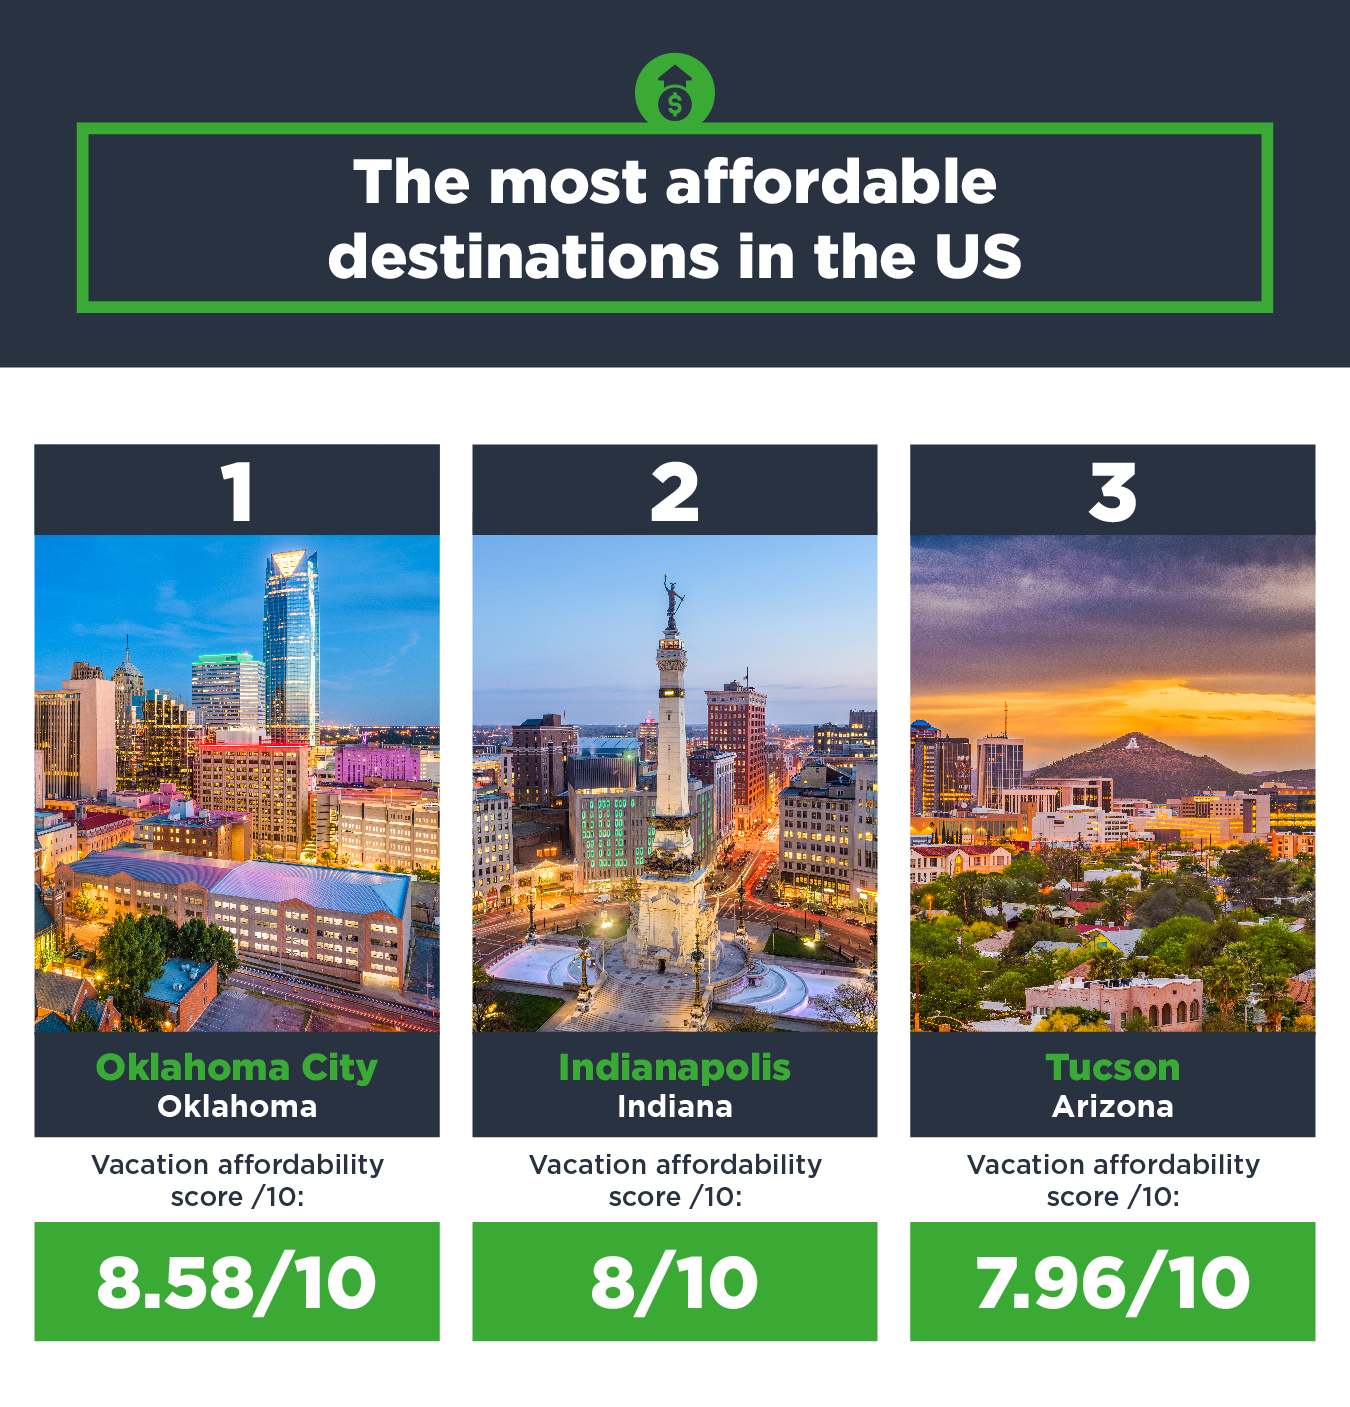 Most affordable destinations in the US